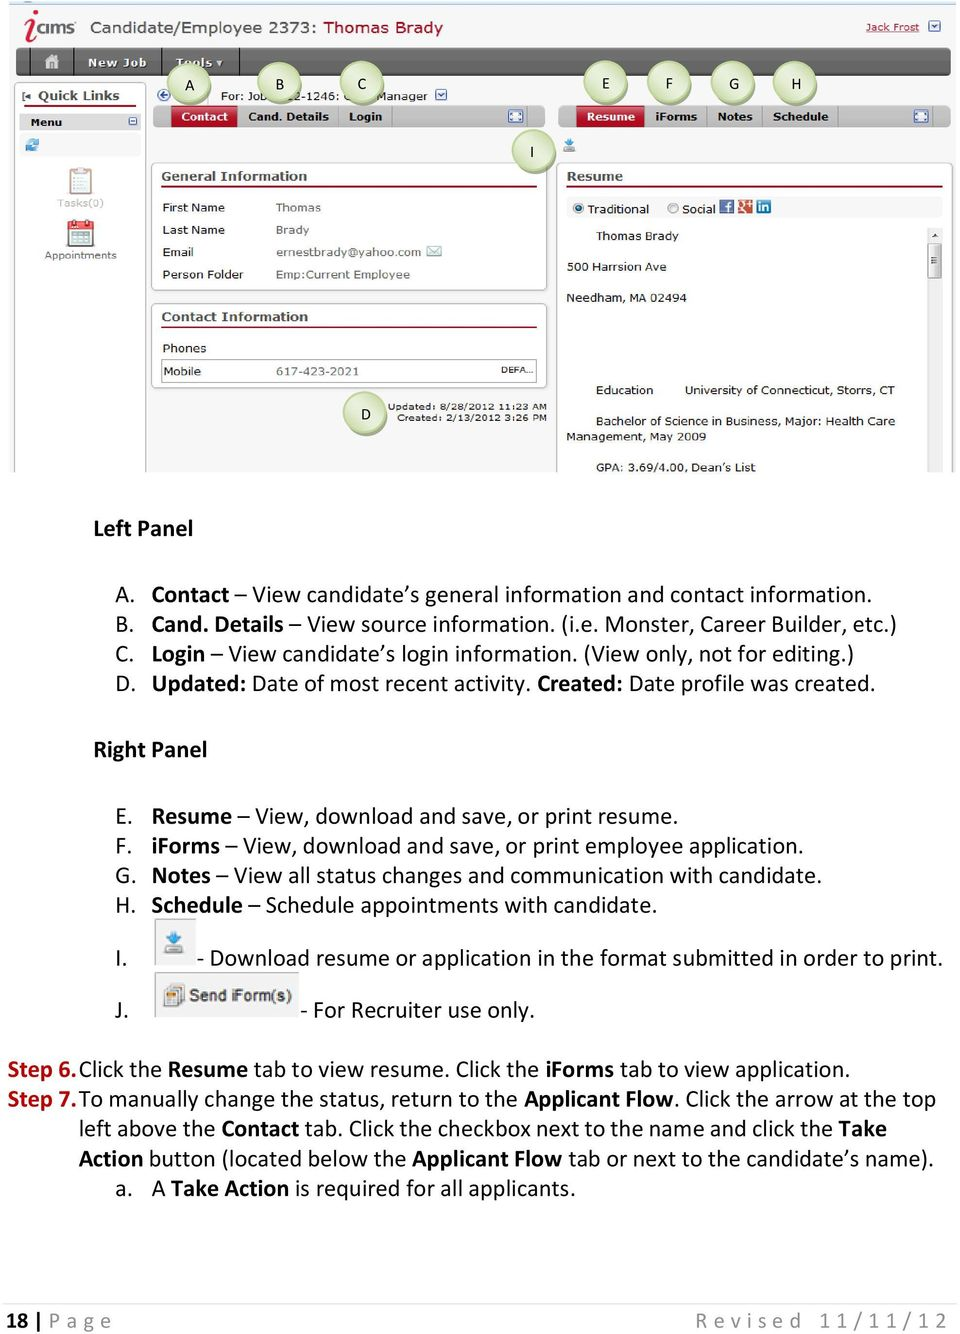 Resume View, download and save, or print resume. F. iforms View, download and save, or print employee application. G. Notes View all status changes and communication with candidate. H.